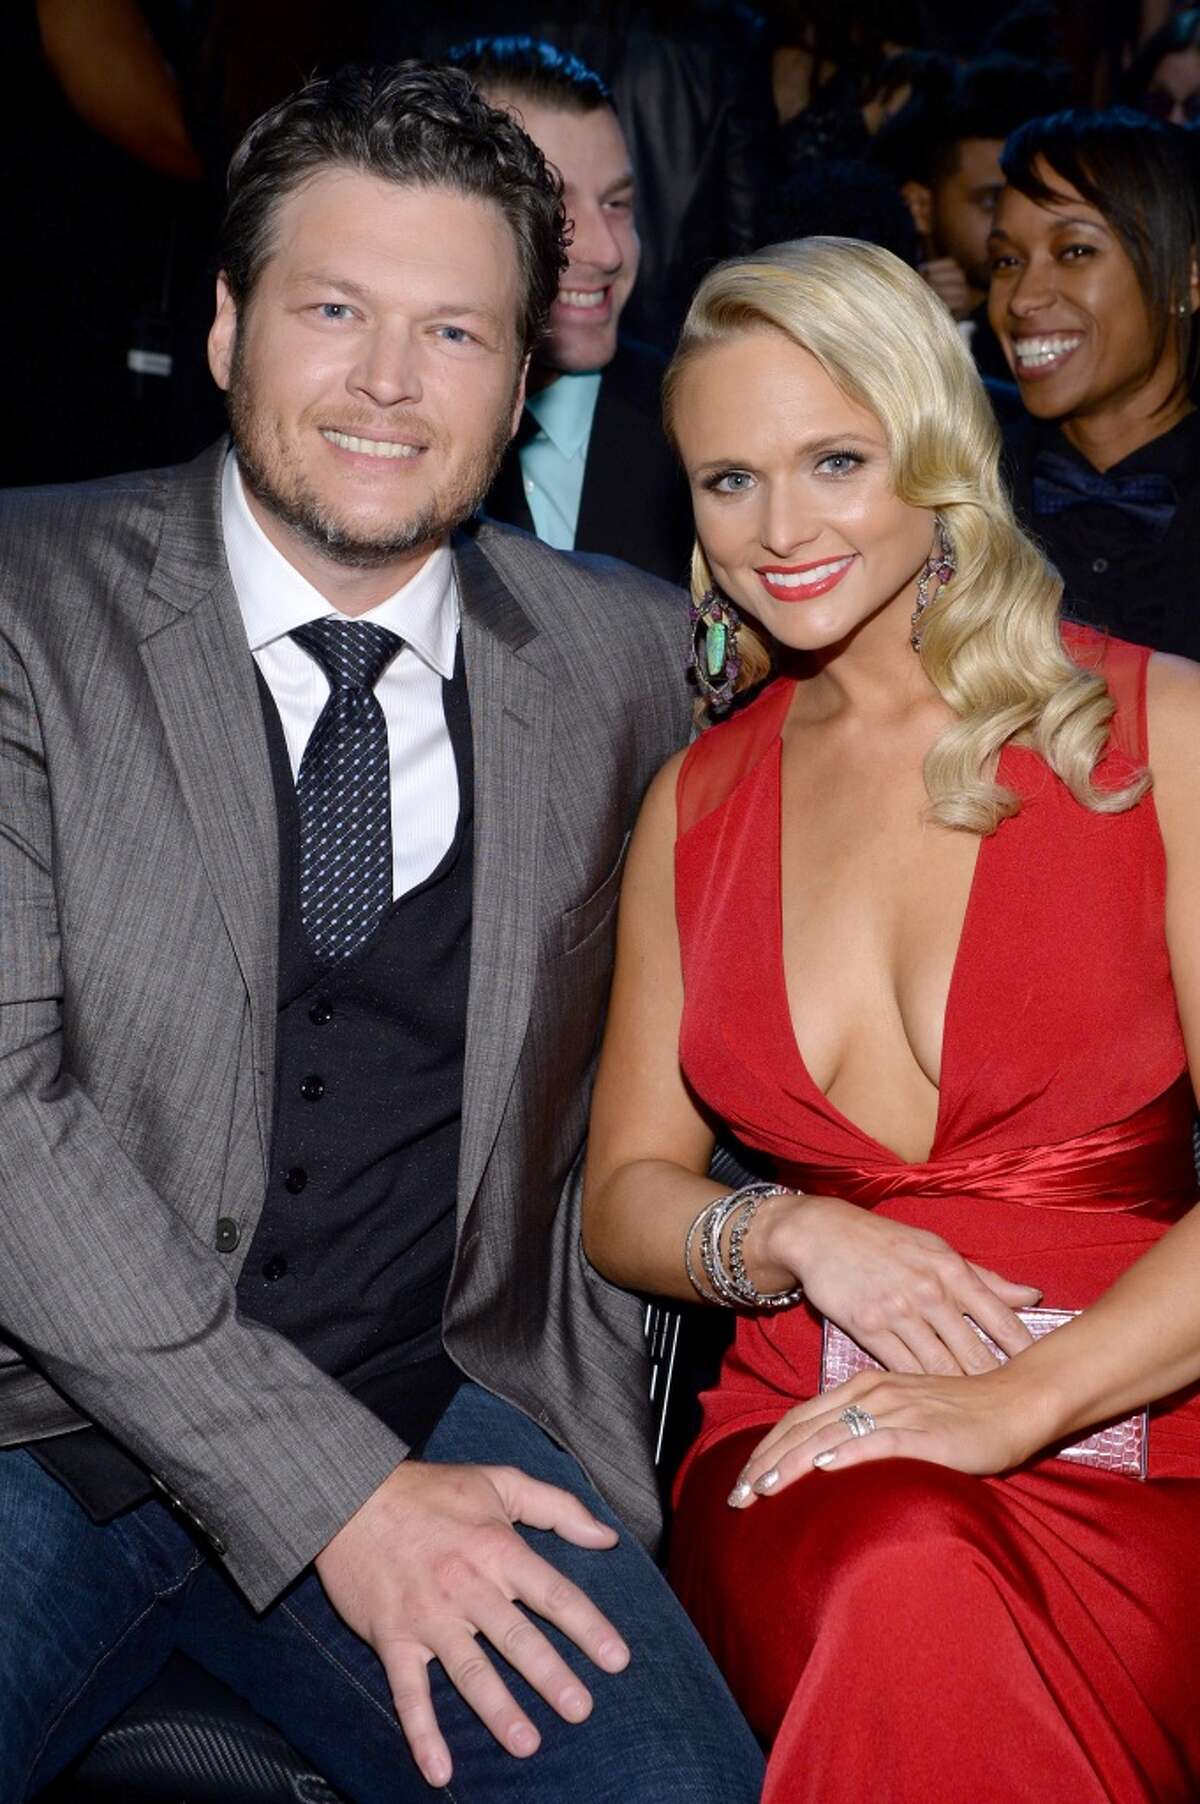 Recording artists Blake Shelton and Miranda Lambert attend the 56th GRAMMY Awards at Staples Center on January 26, 2014 in Los Angeles, California.